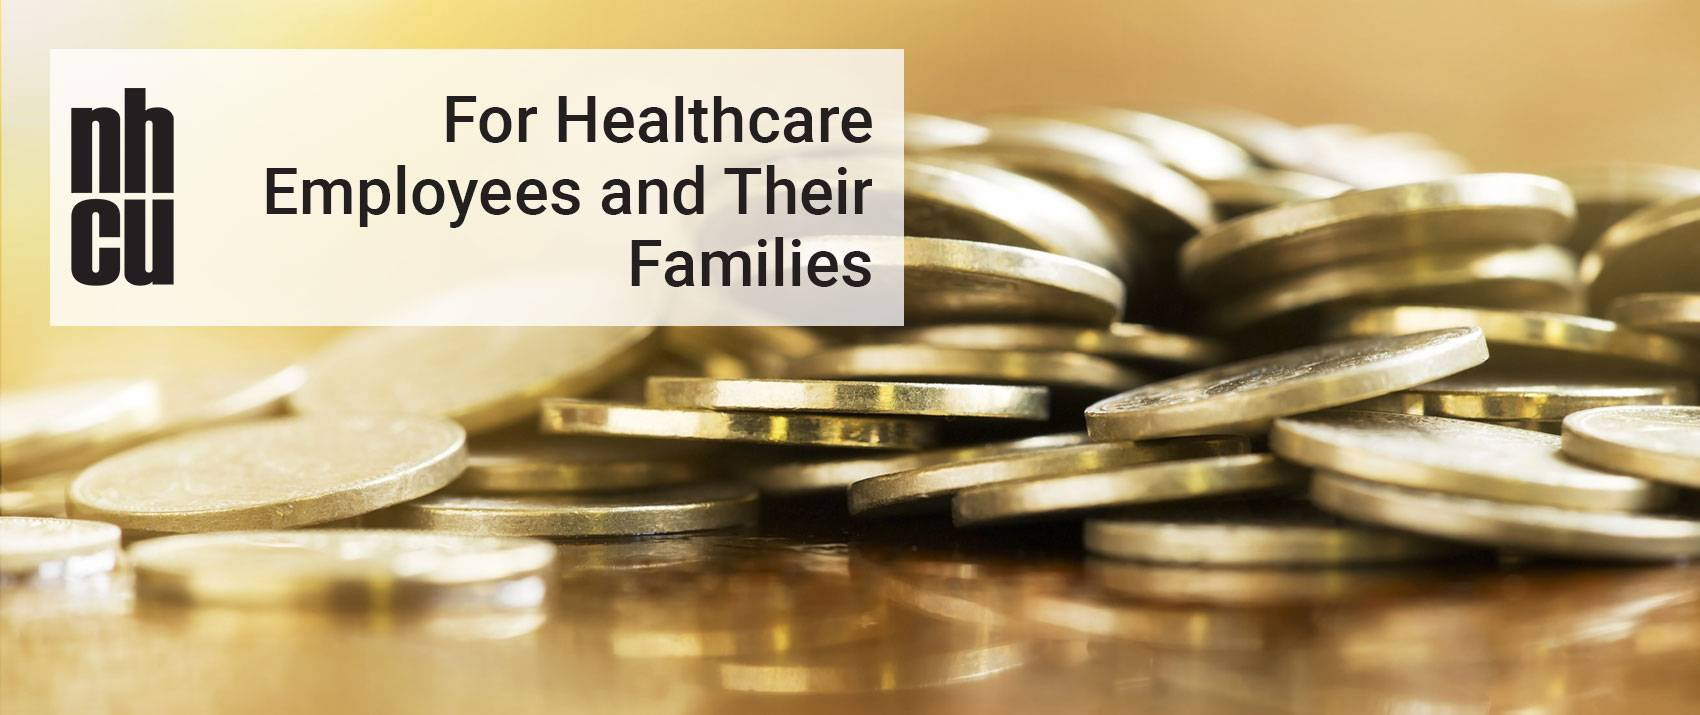 For Healthcare Employees and Their Families